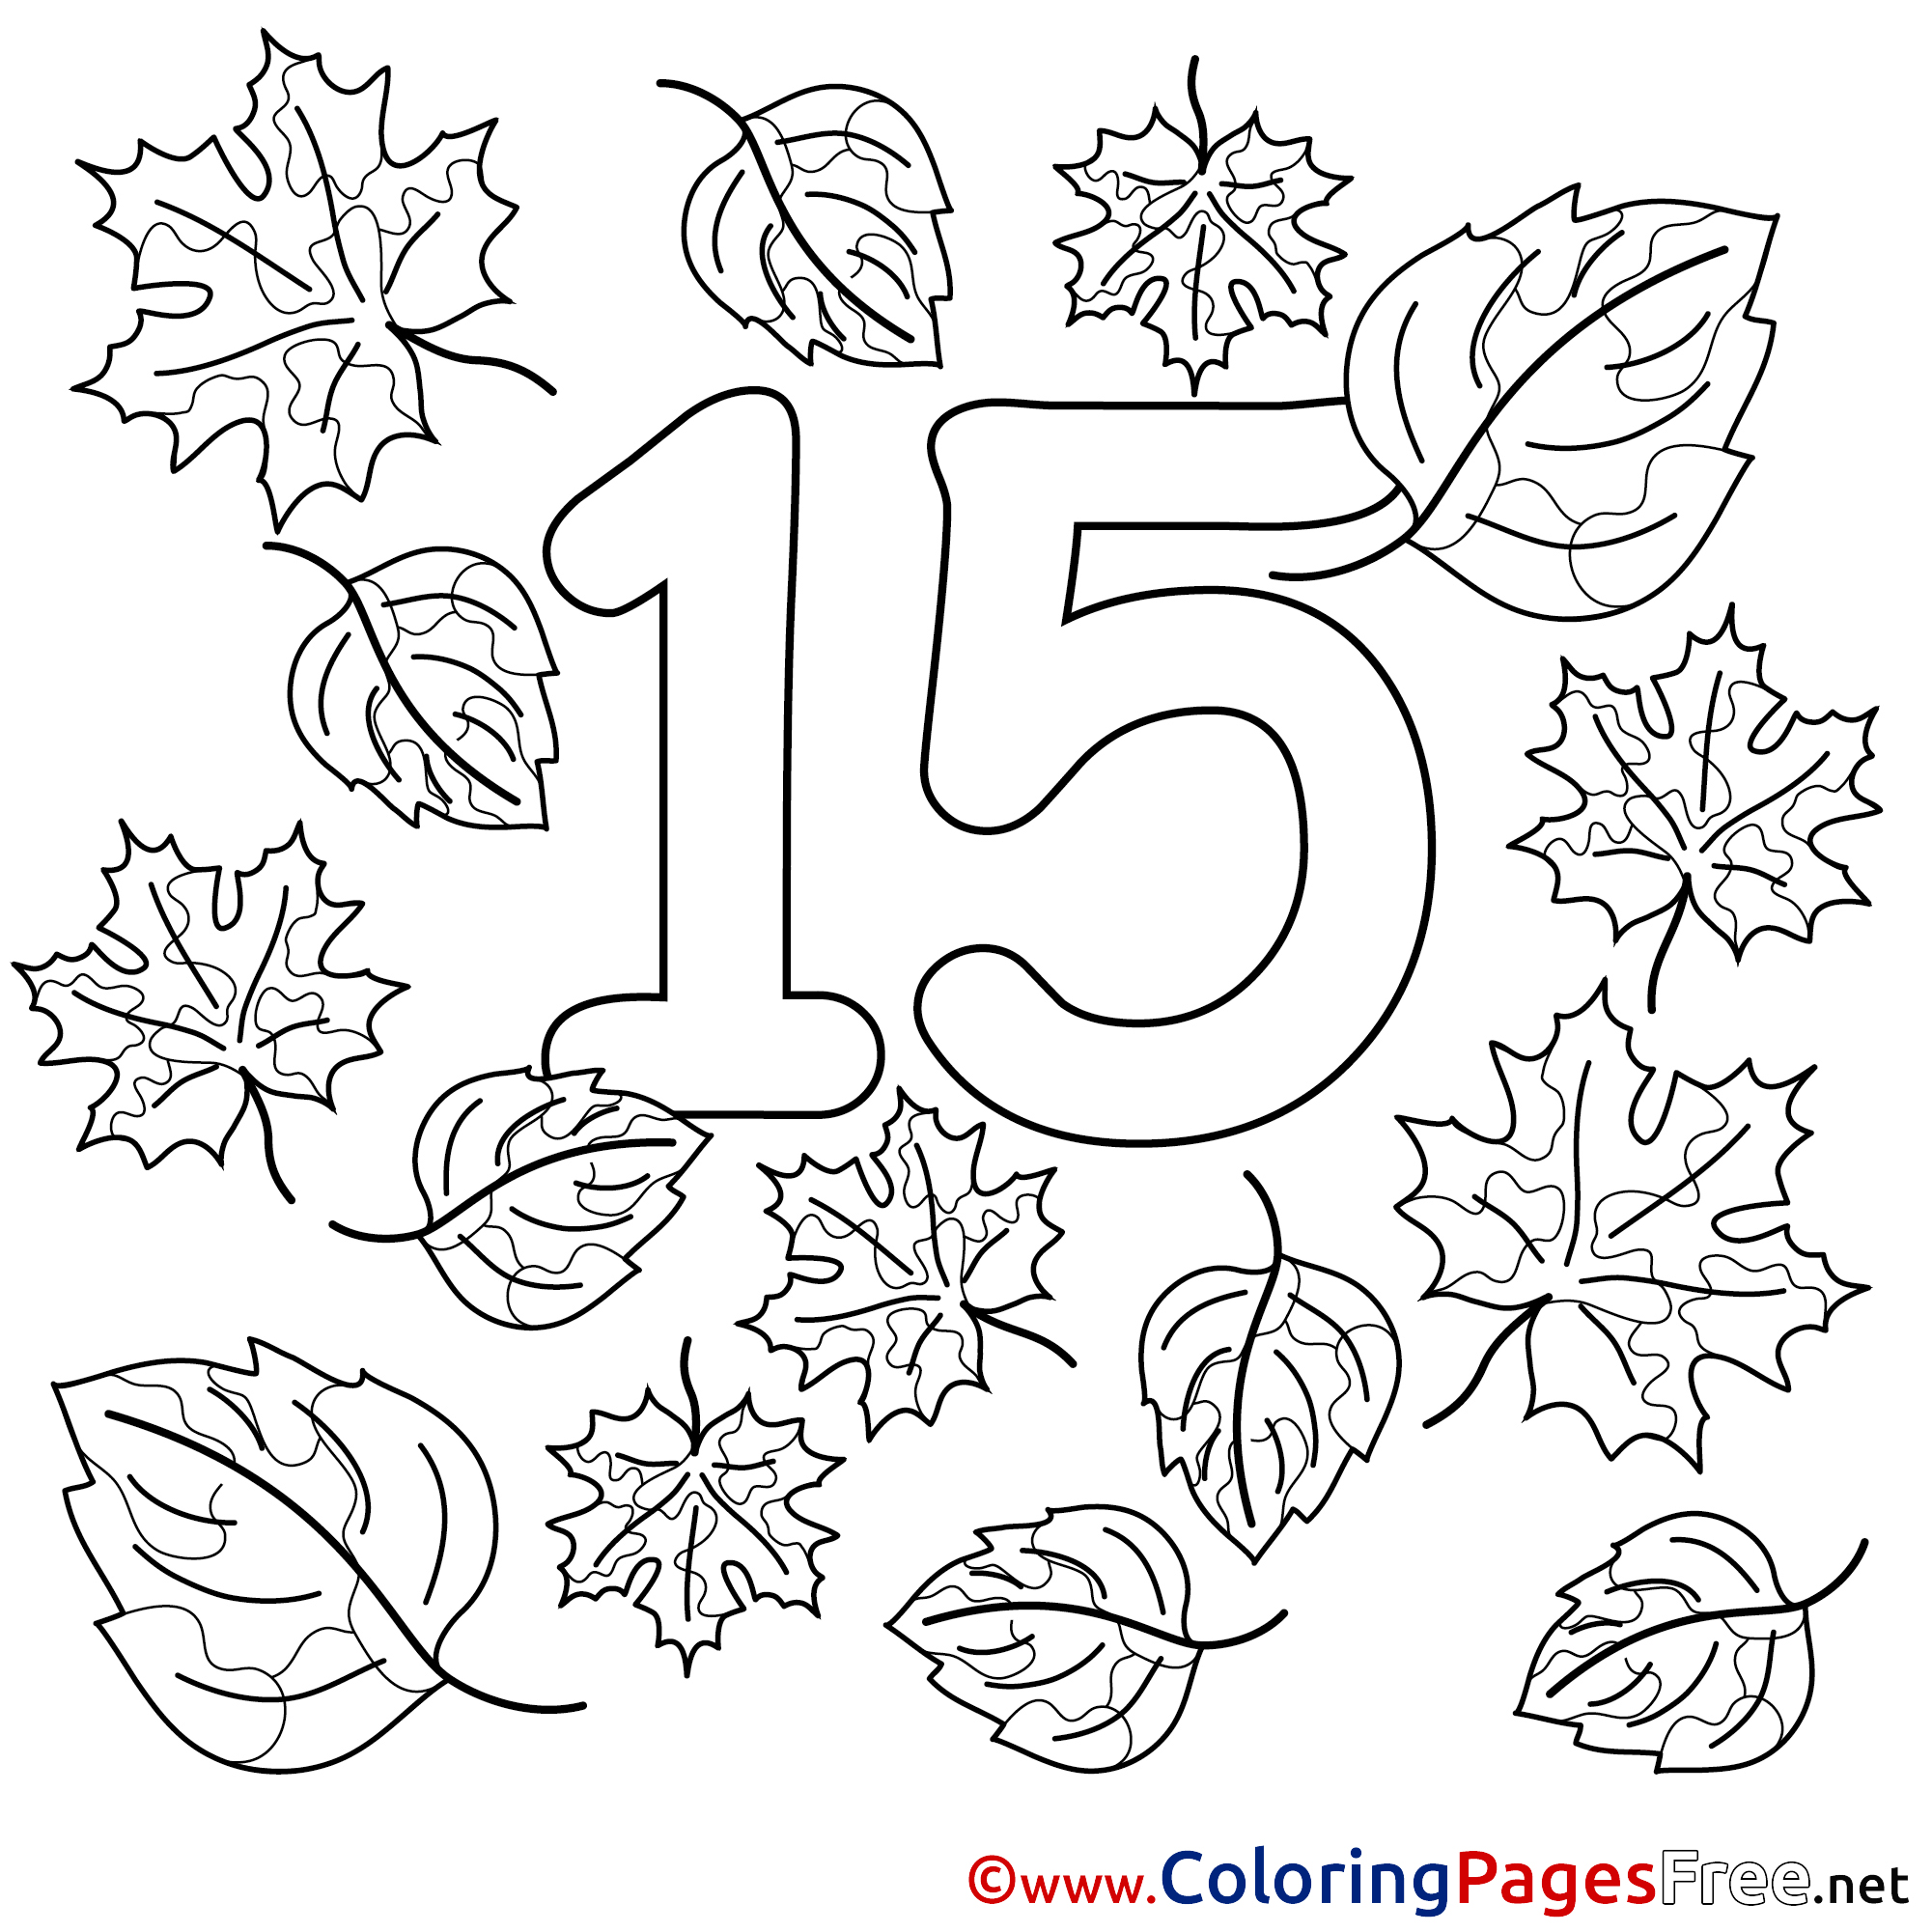 15 Leaves Numbers Colouring Sheet Free